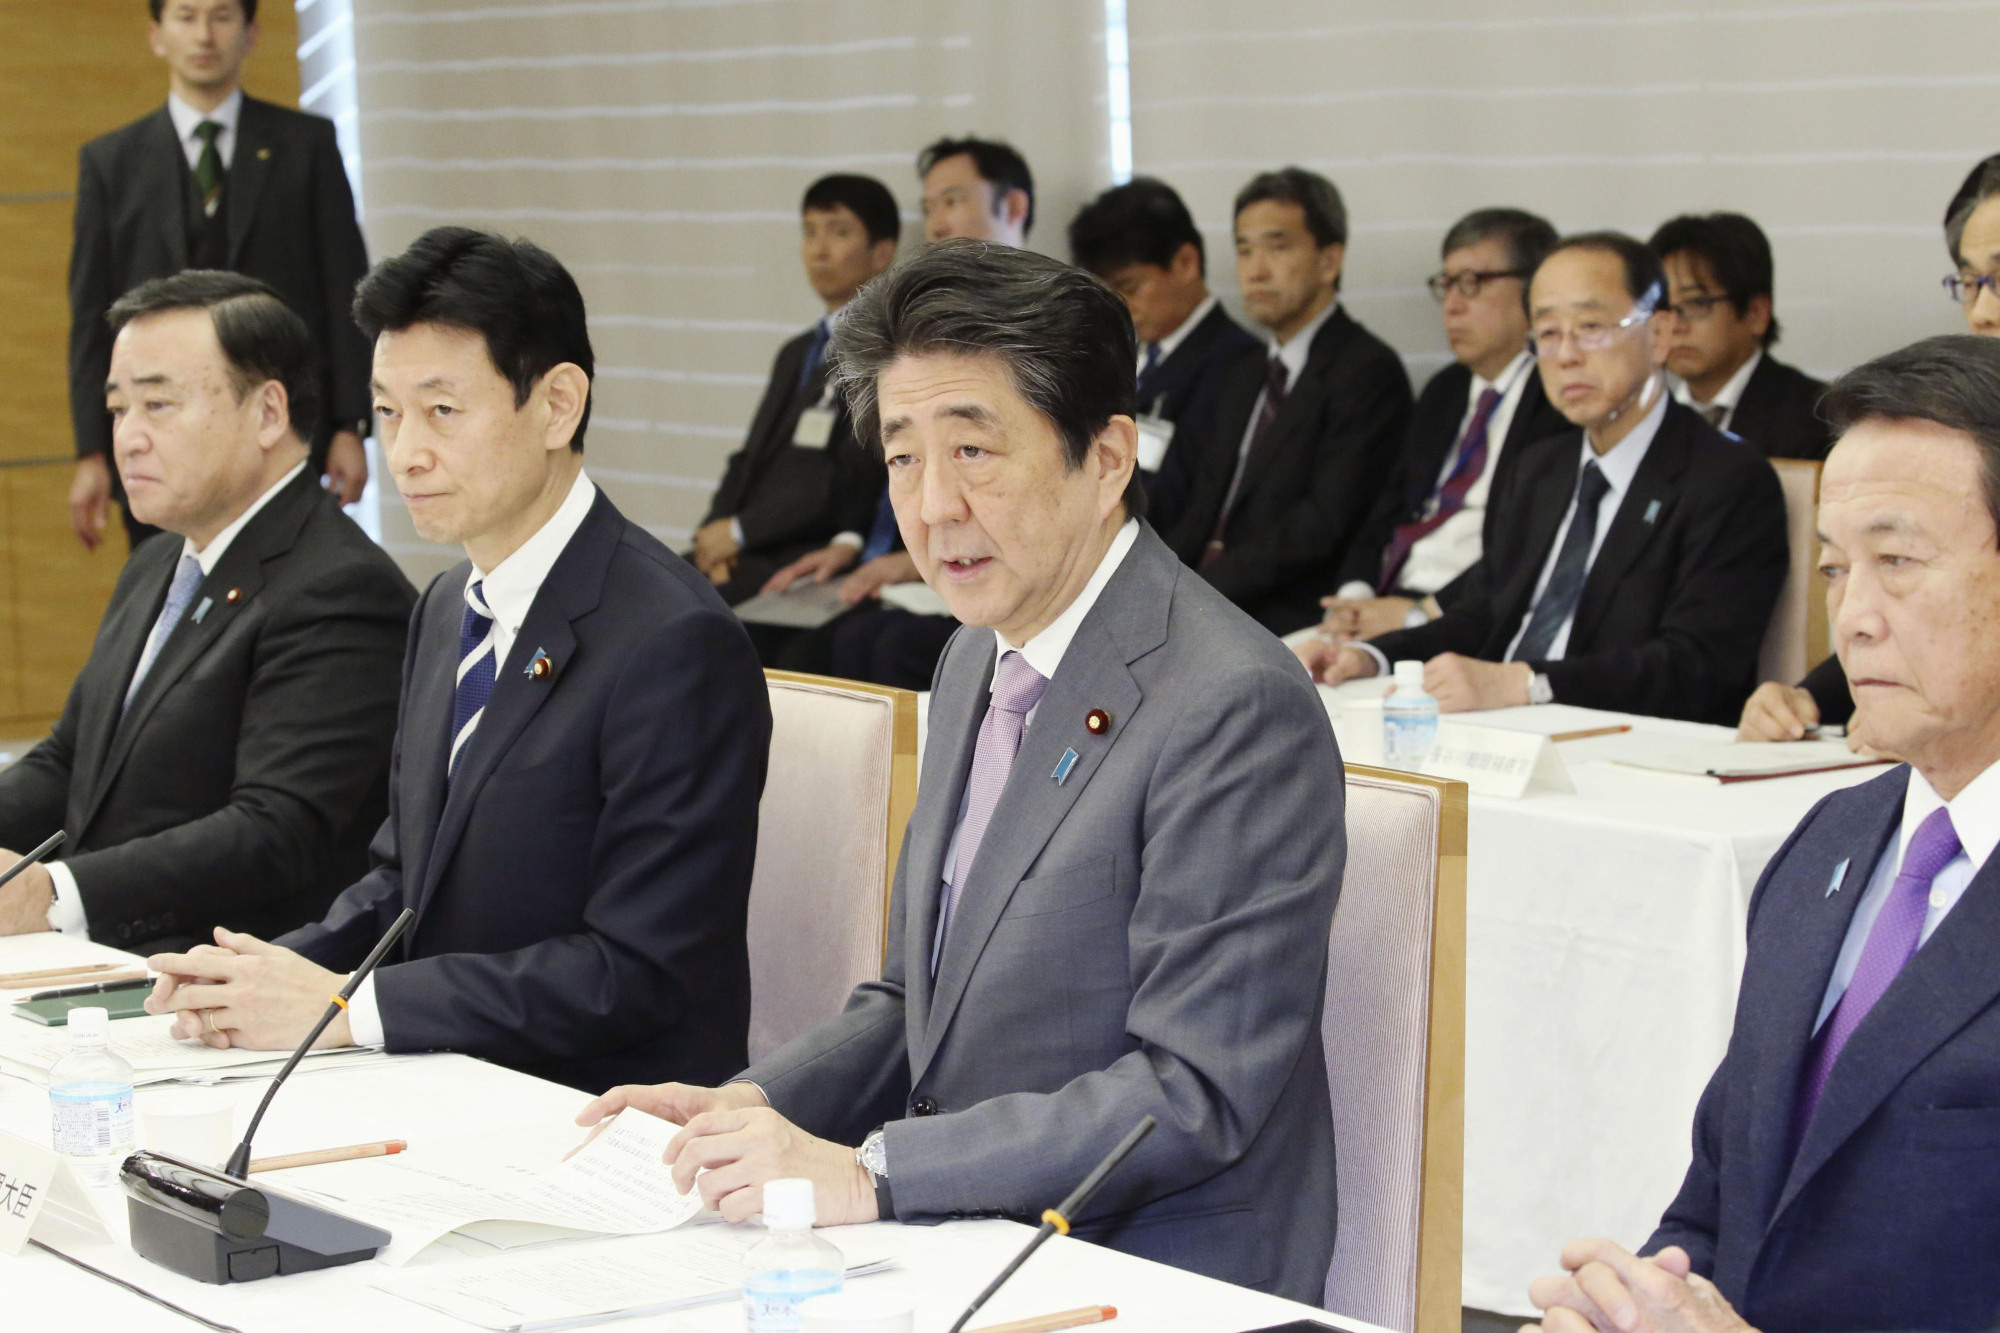 Prime Minister Shinzo Abe attends a meeting of the Council on Economic and Fiscal Policy last month at the Prime Minister's Office in Tokyo. | KYODO